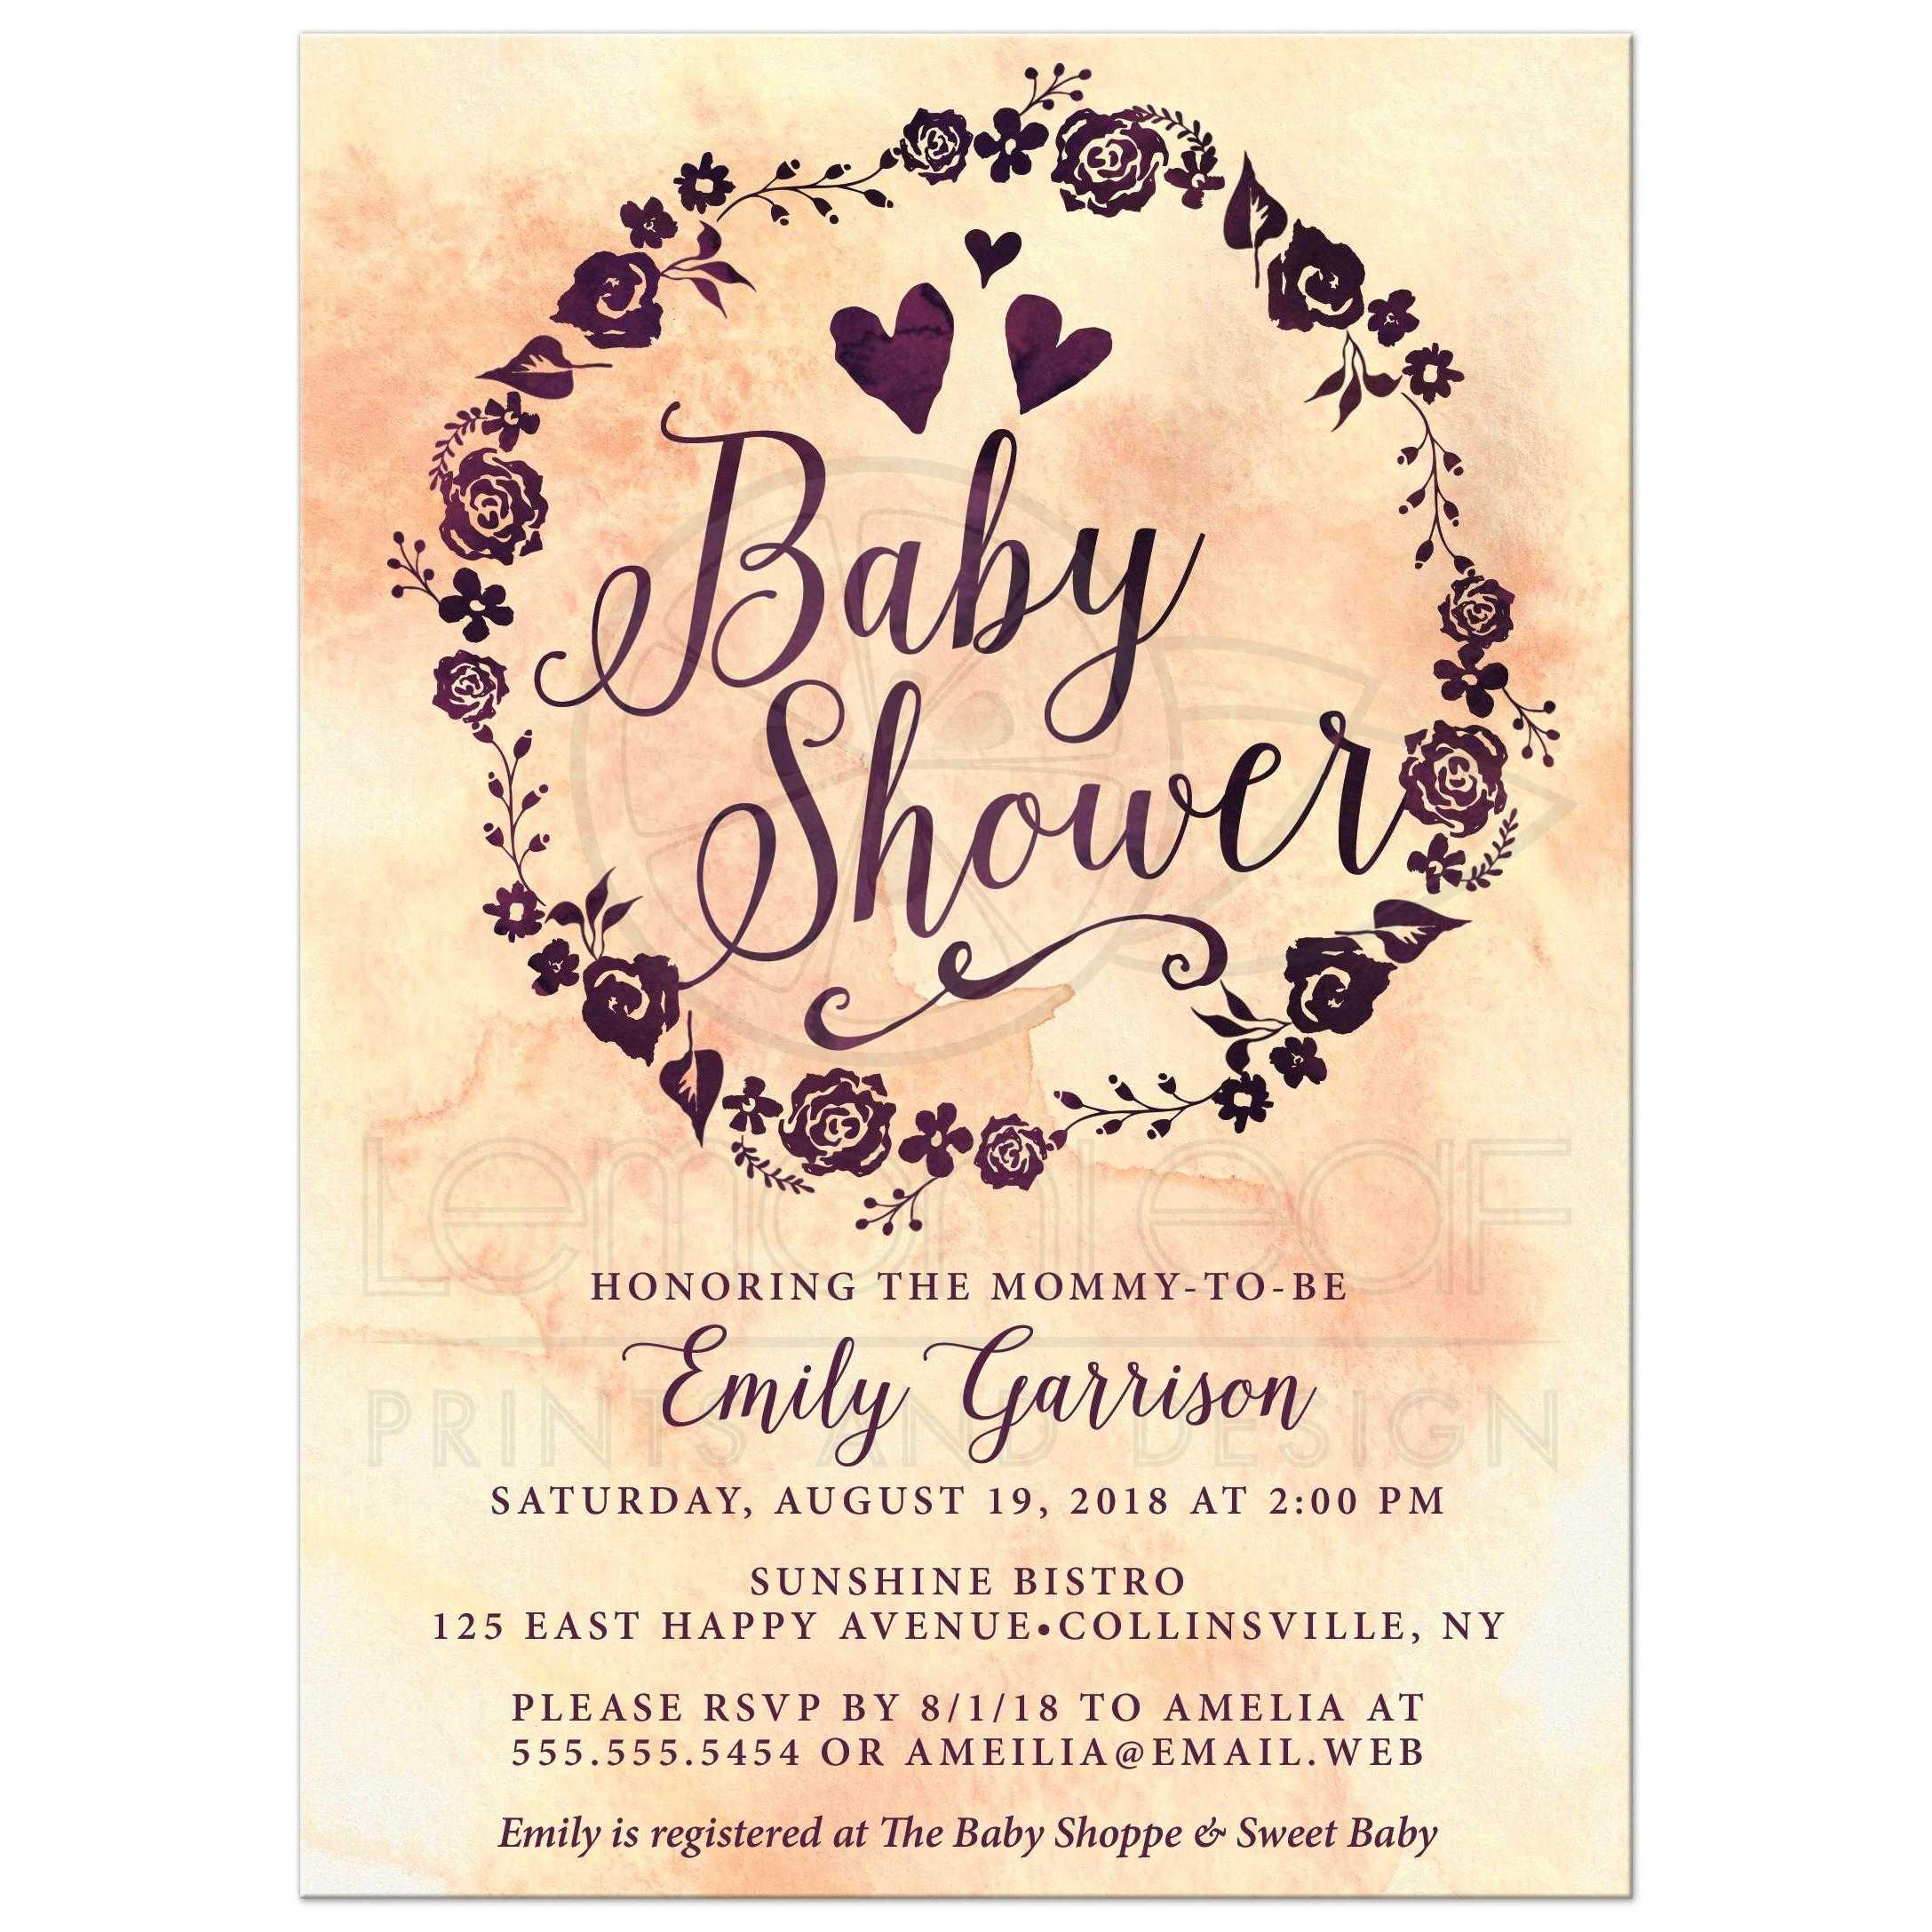 Baby Shower Invitations - Watercolor Wreath